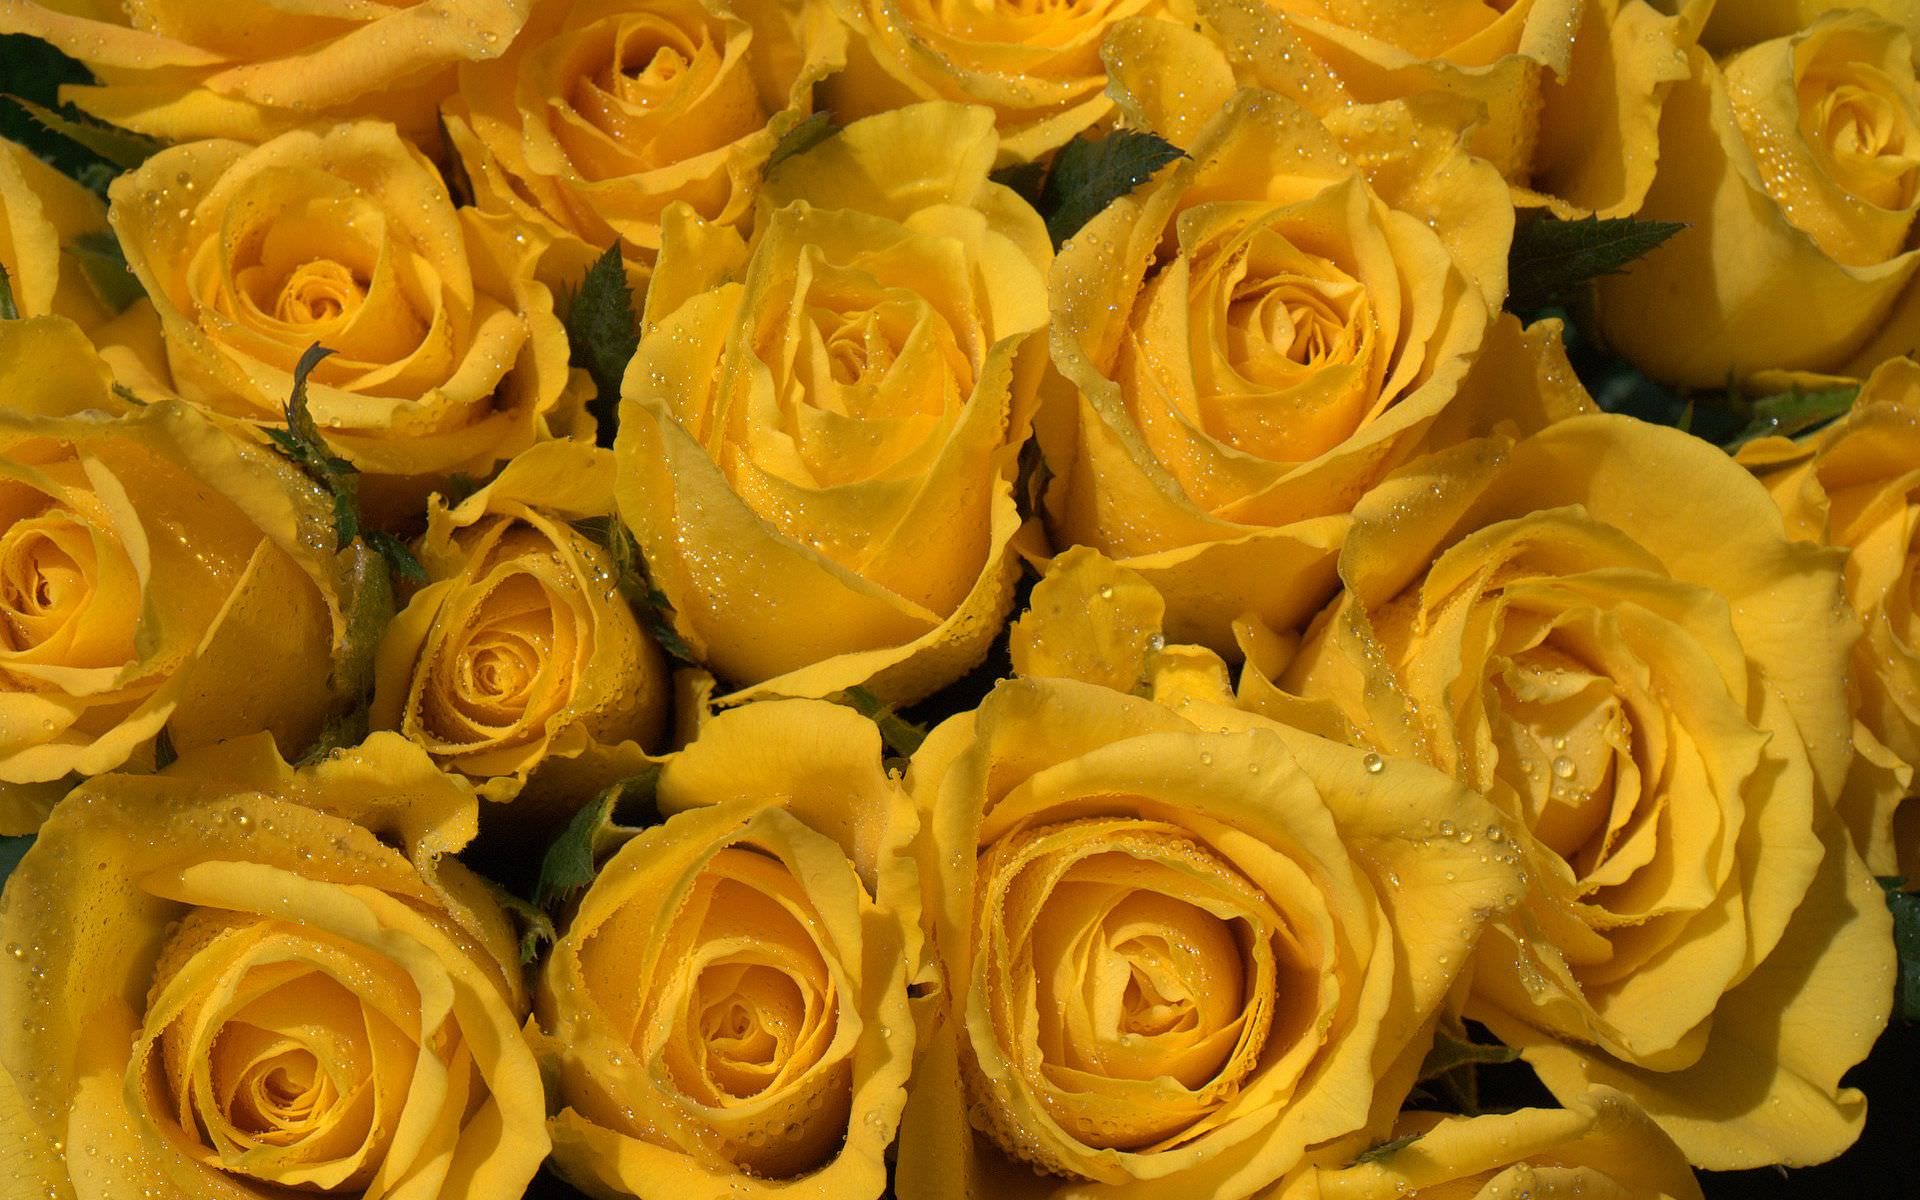 water drops on yellow roses background